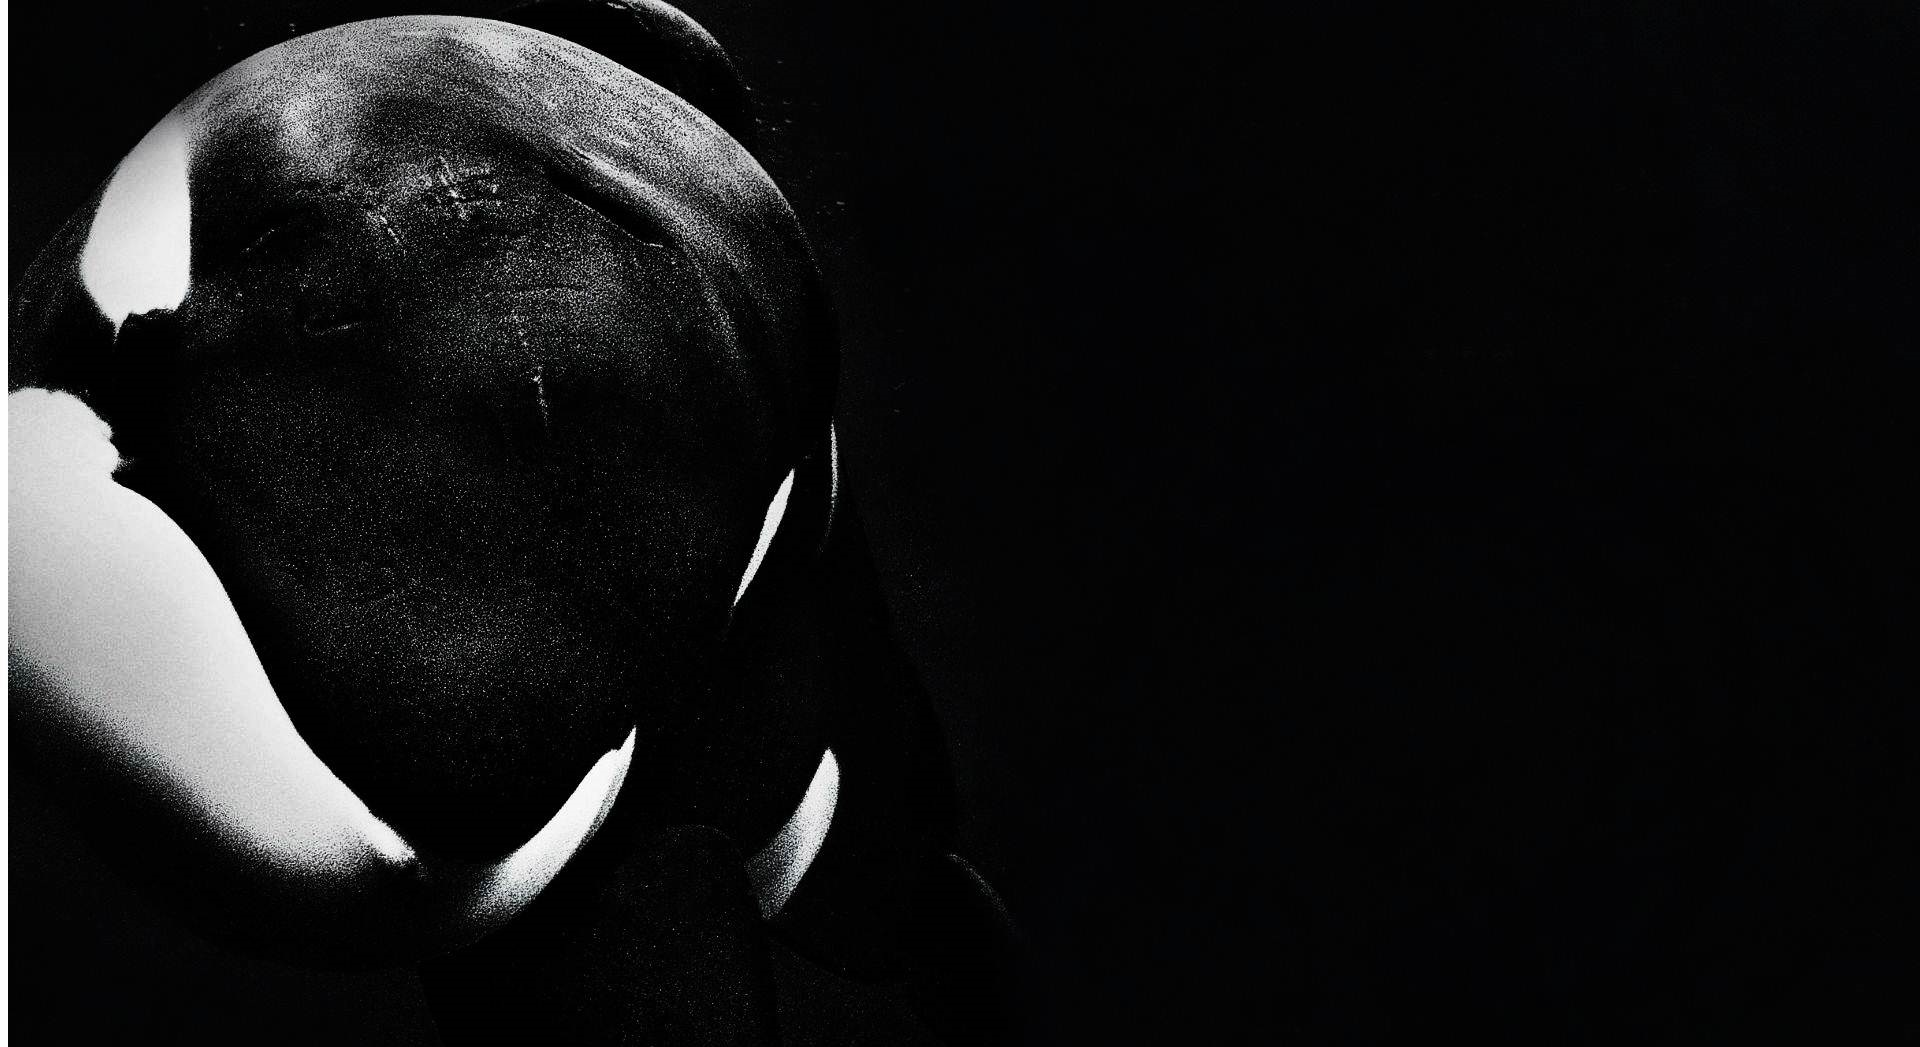 Orca whales images orca hd wallpaper and background photos 40437048 orca whales images orca hd wallpaper and background photos altavistaventures Image collections